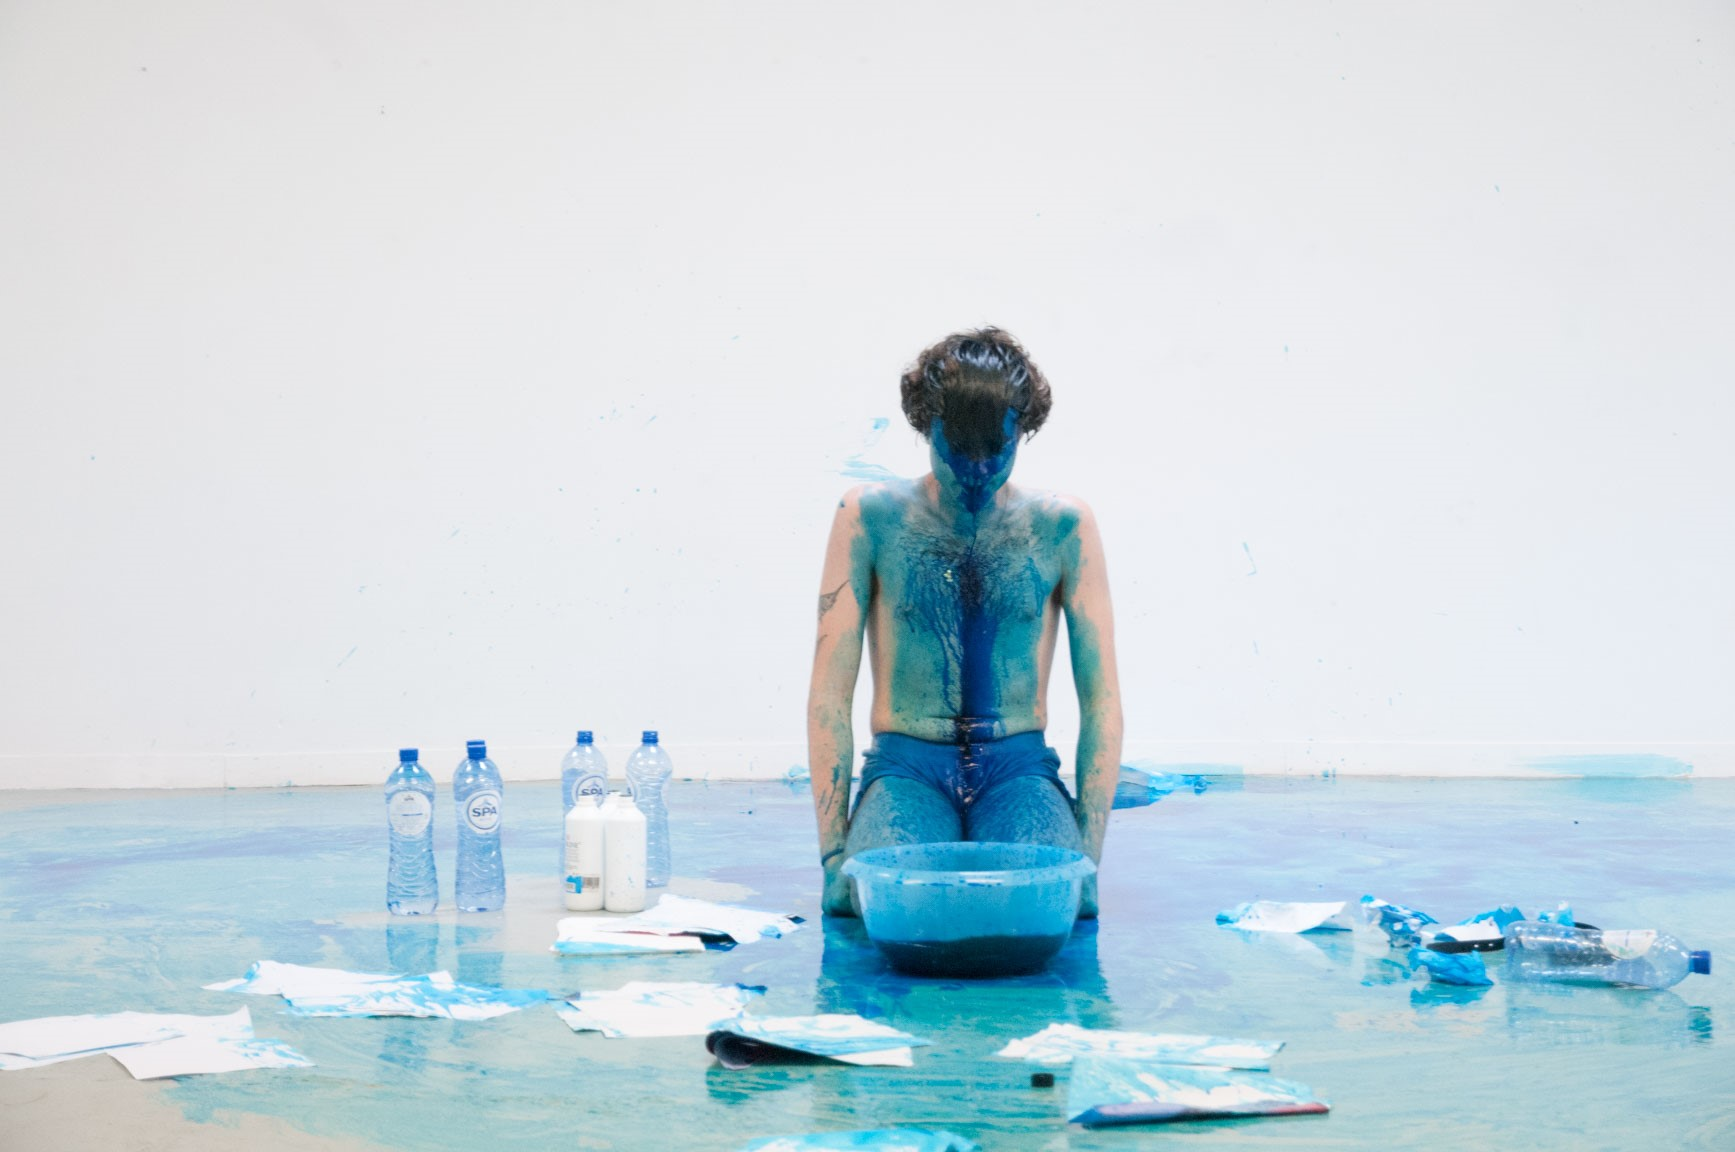 Giovanni kneels in a white room with a bowl of blue ink in front of him, he wears no shirt and is covered in blue ink diluted by water surrounded by paper, bottles of water and the blue ink.